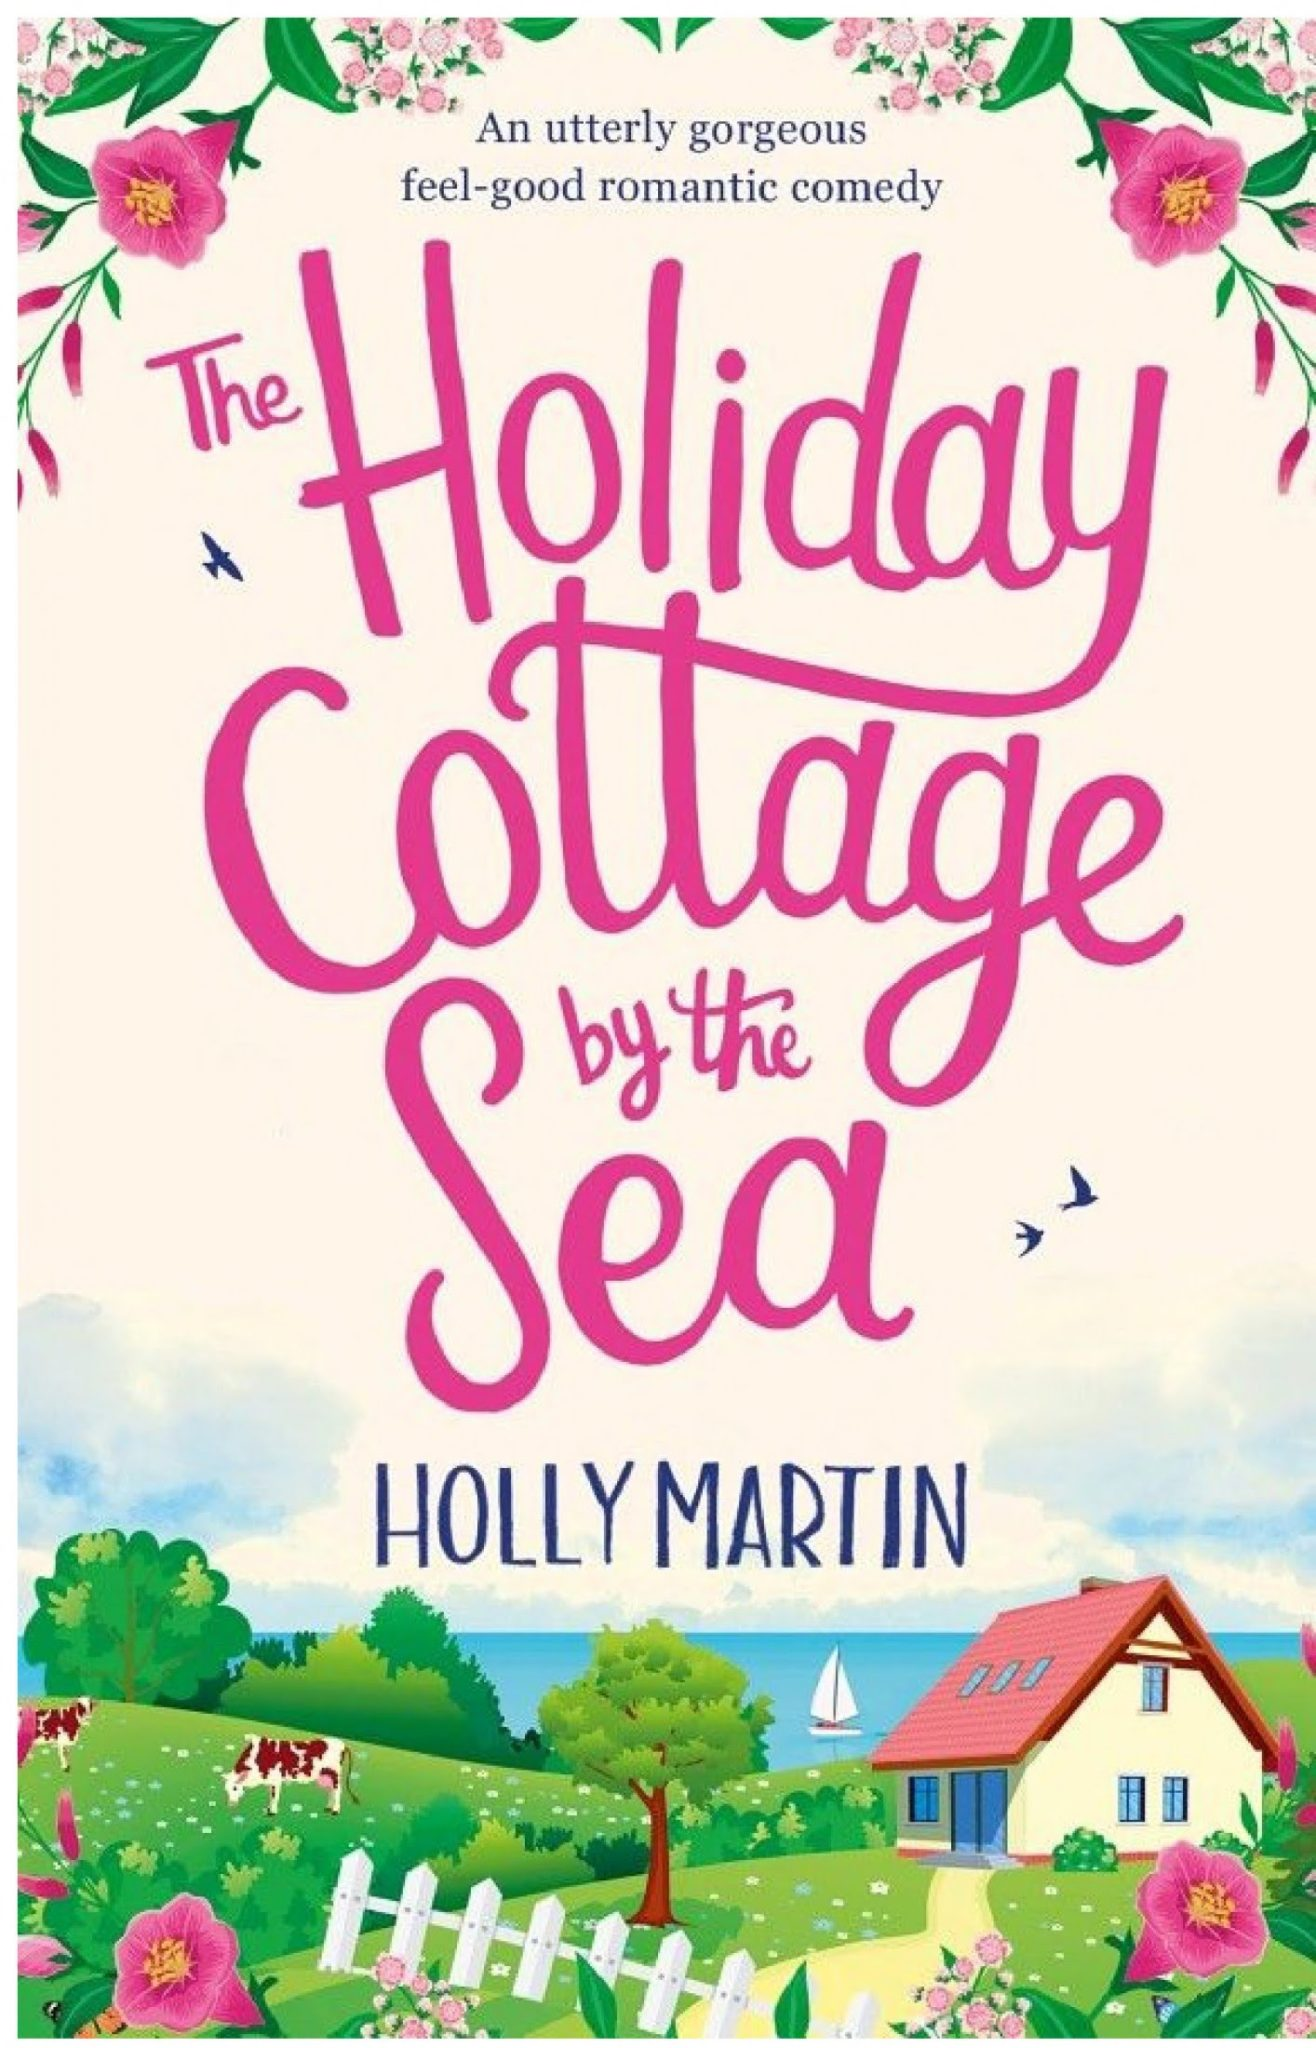 The Holiday Cottage by the Sea